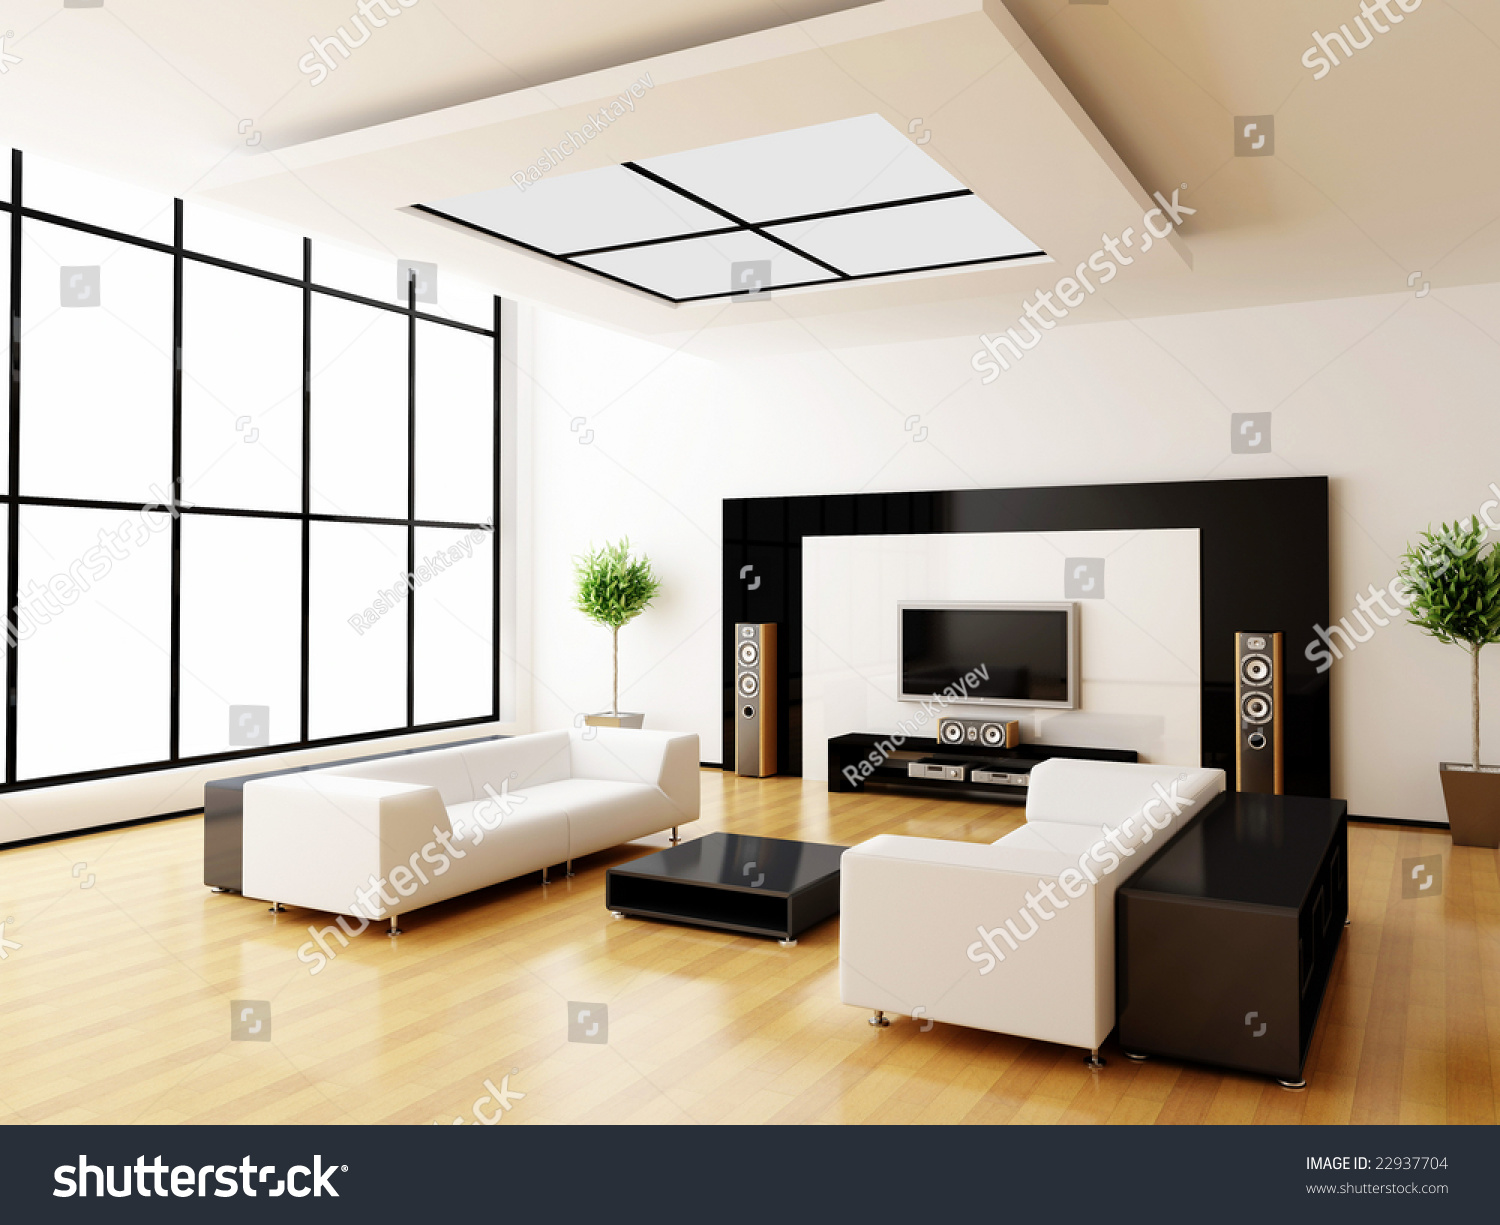 Living Room Modern Home Interior modern home interior 3d rendering stock photo 22937704 preview save to a lightbox